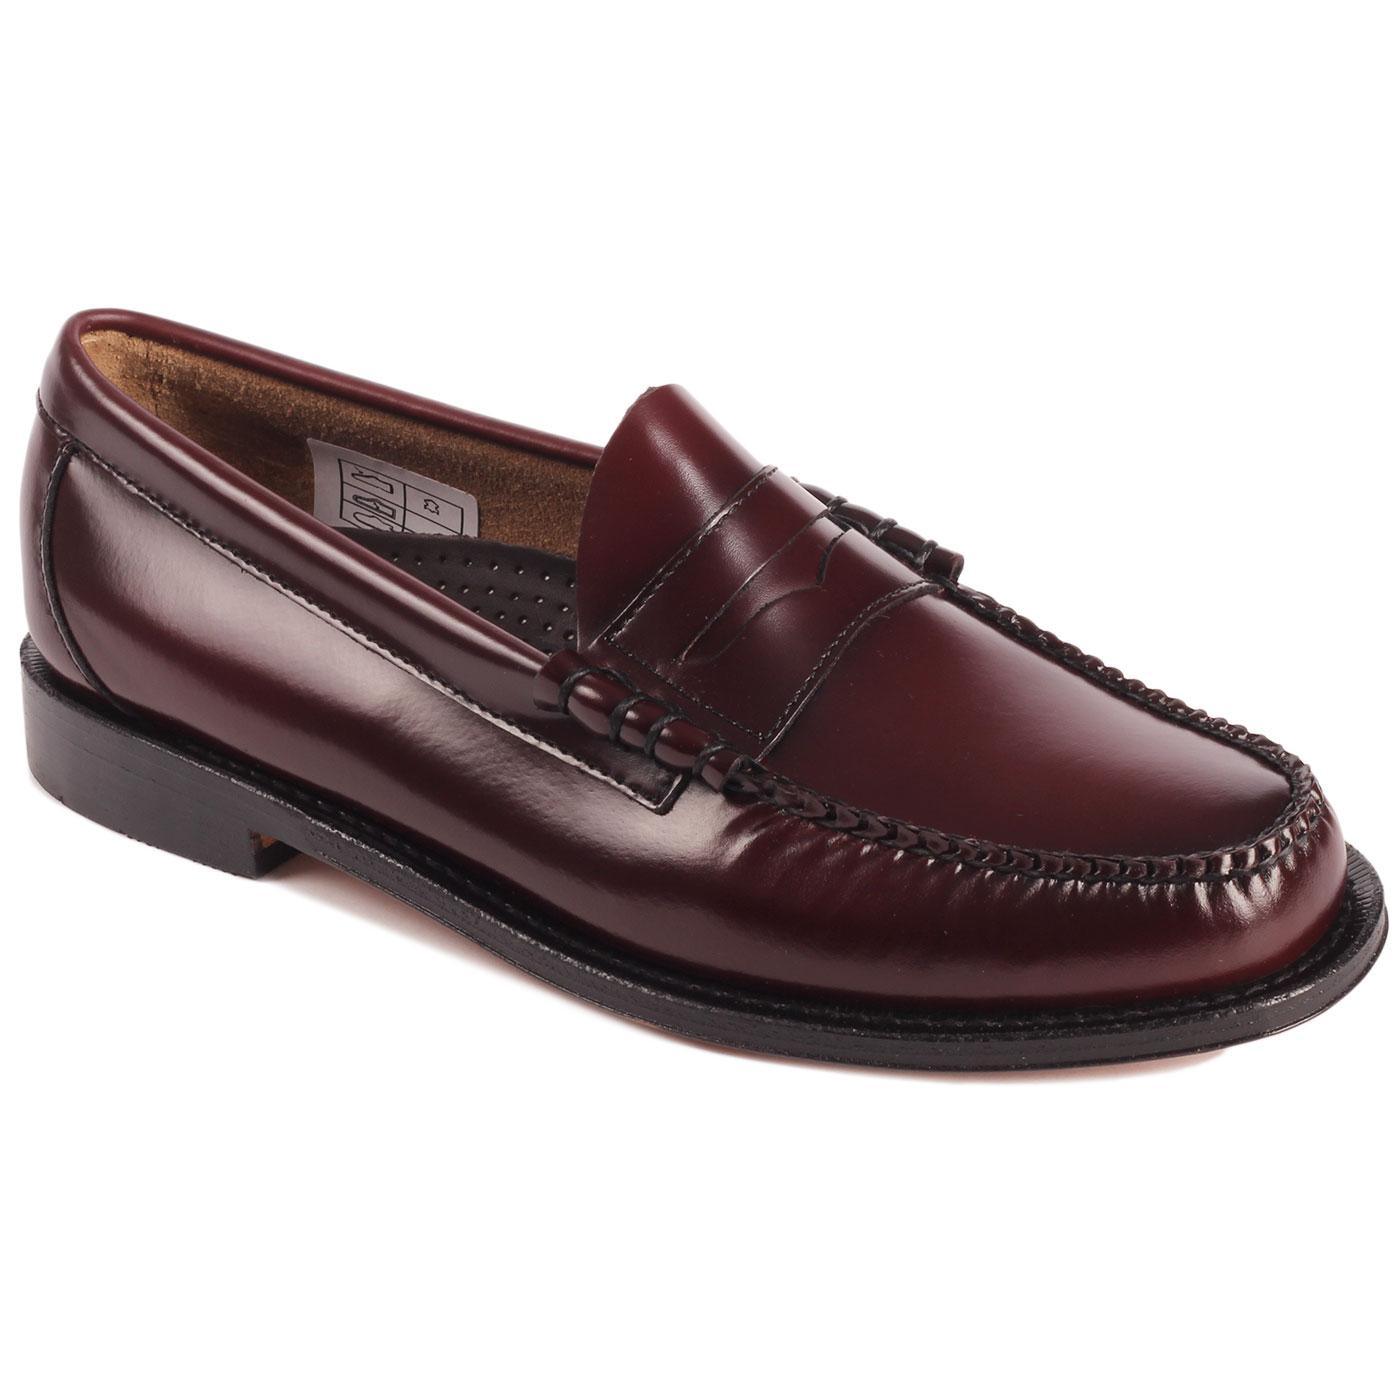 Heritage Larson BASS WEEJUNS Penny Loafers (Wine)